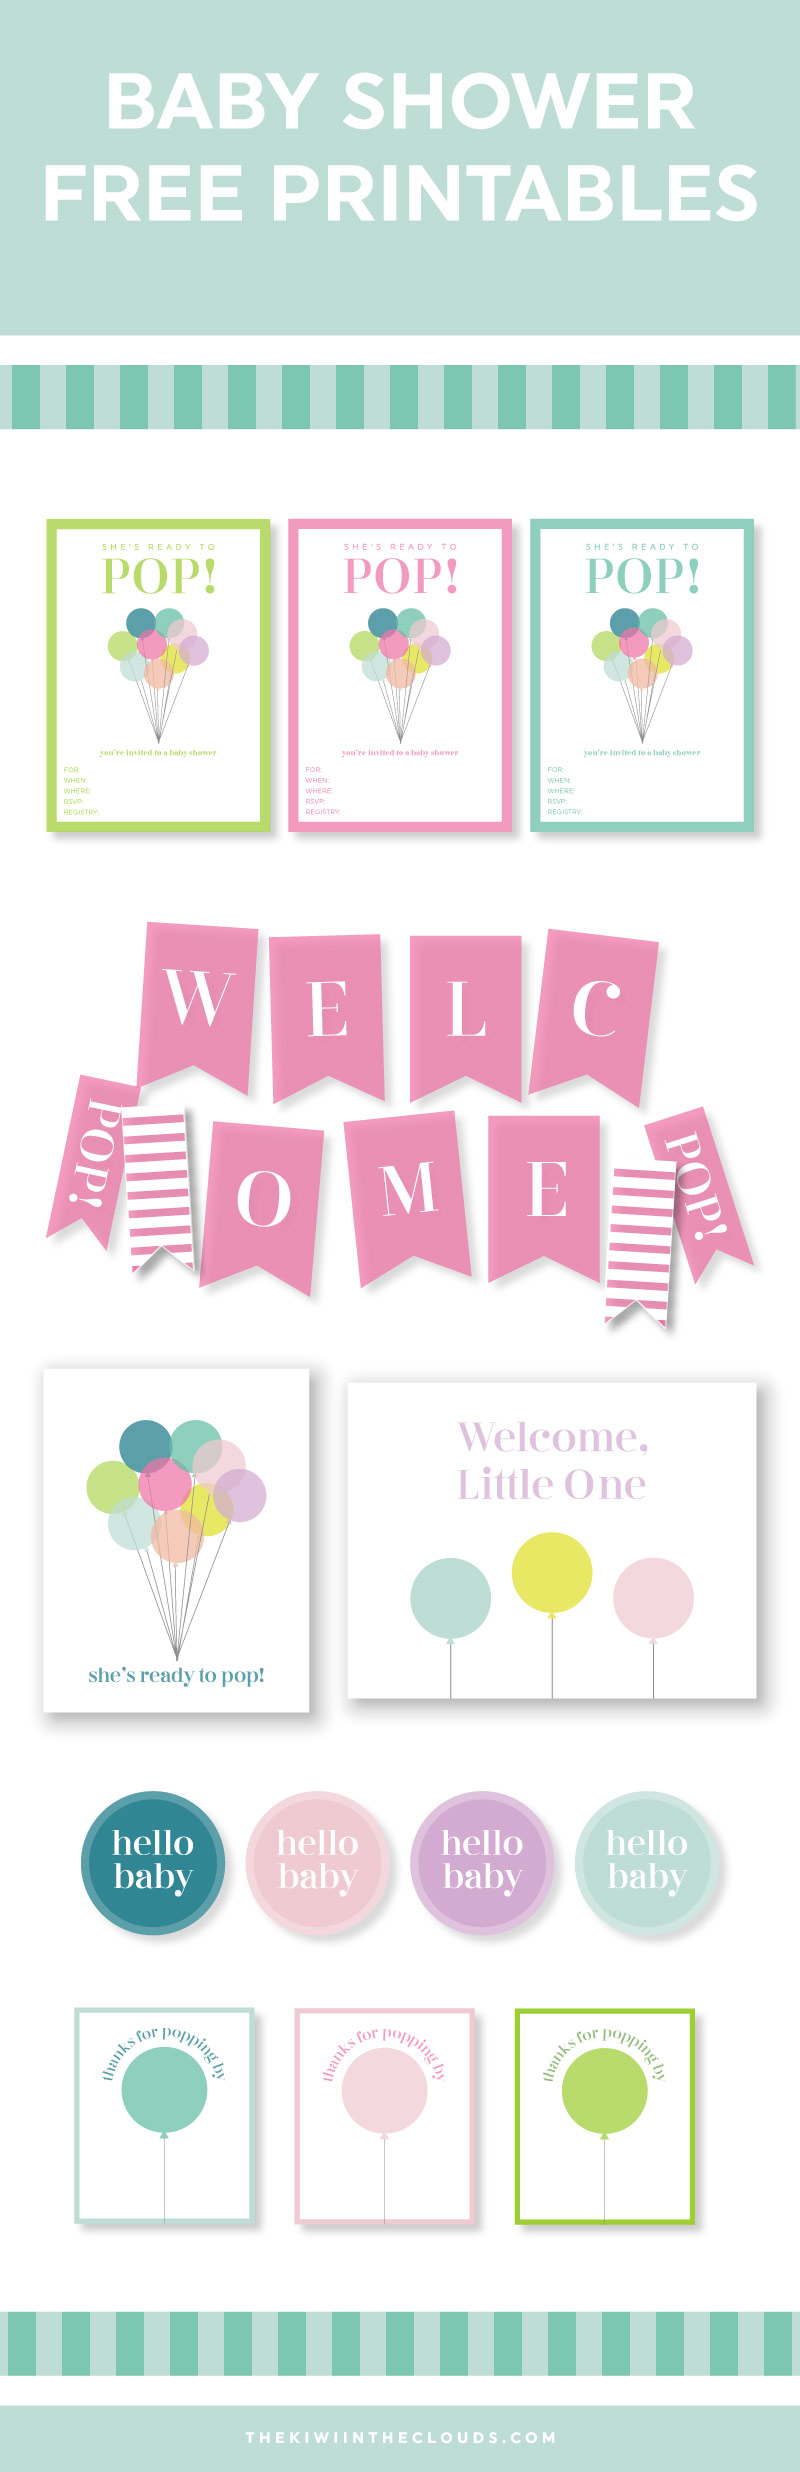 Ready To Pop Baby Shower Printables | Free Printables | Baby Shower Ideas |  Baby Gear